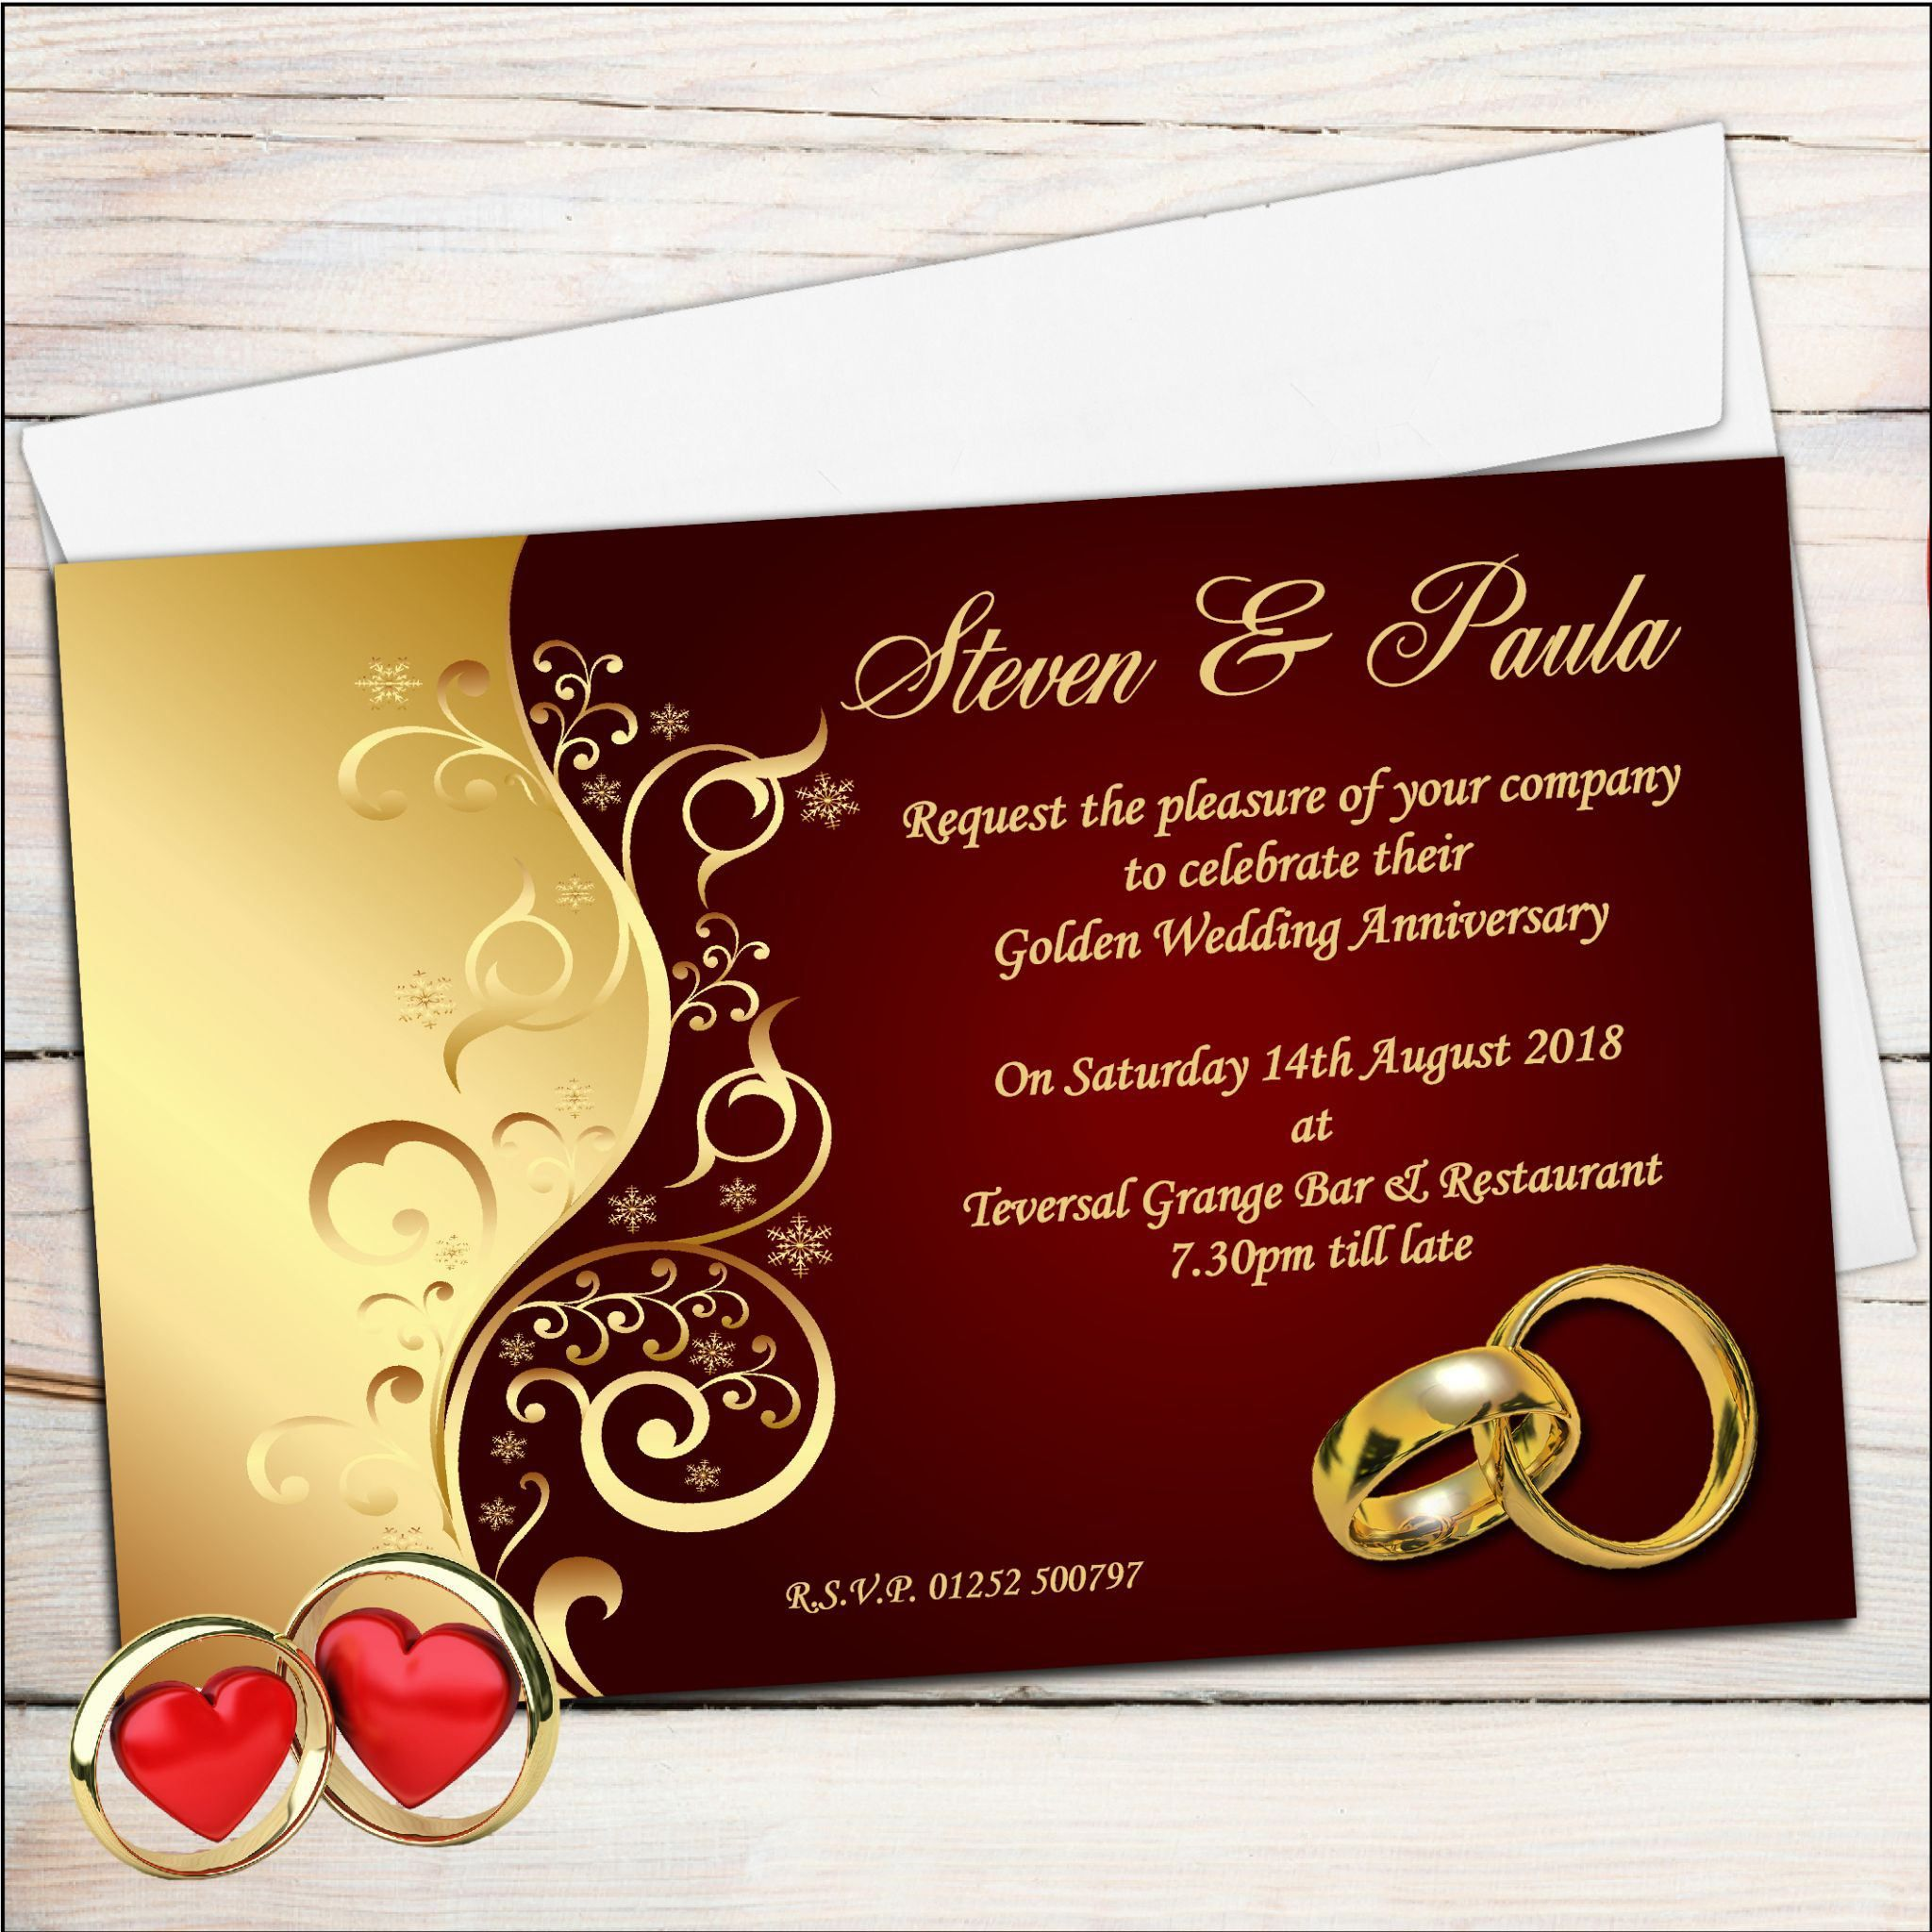 Wedding Invitations Cards Wedding Invitations Cards Near Me